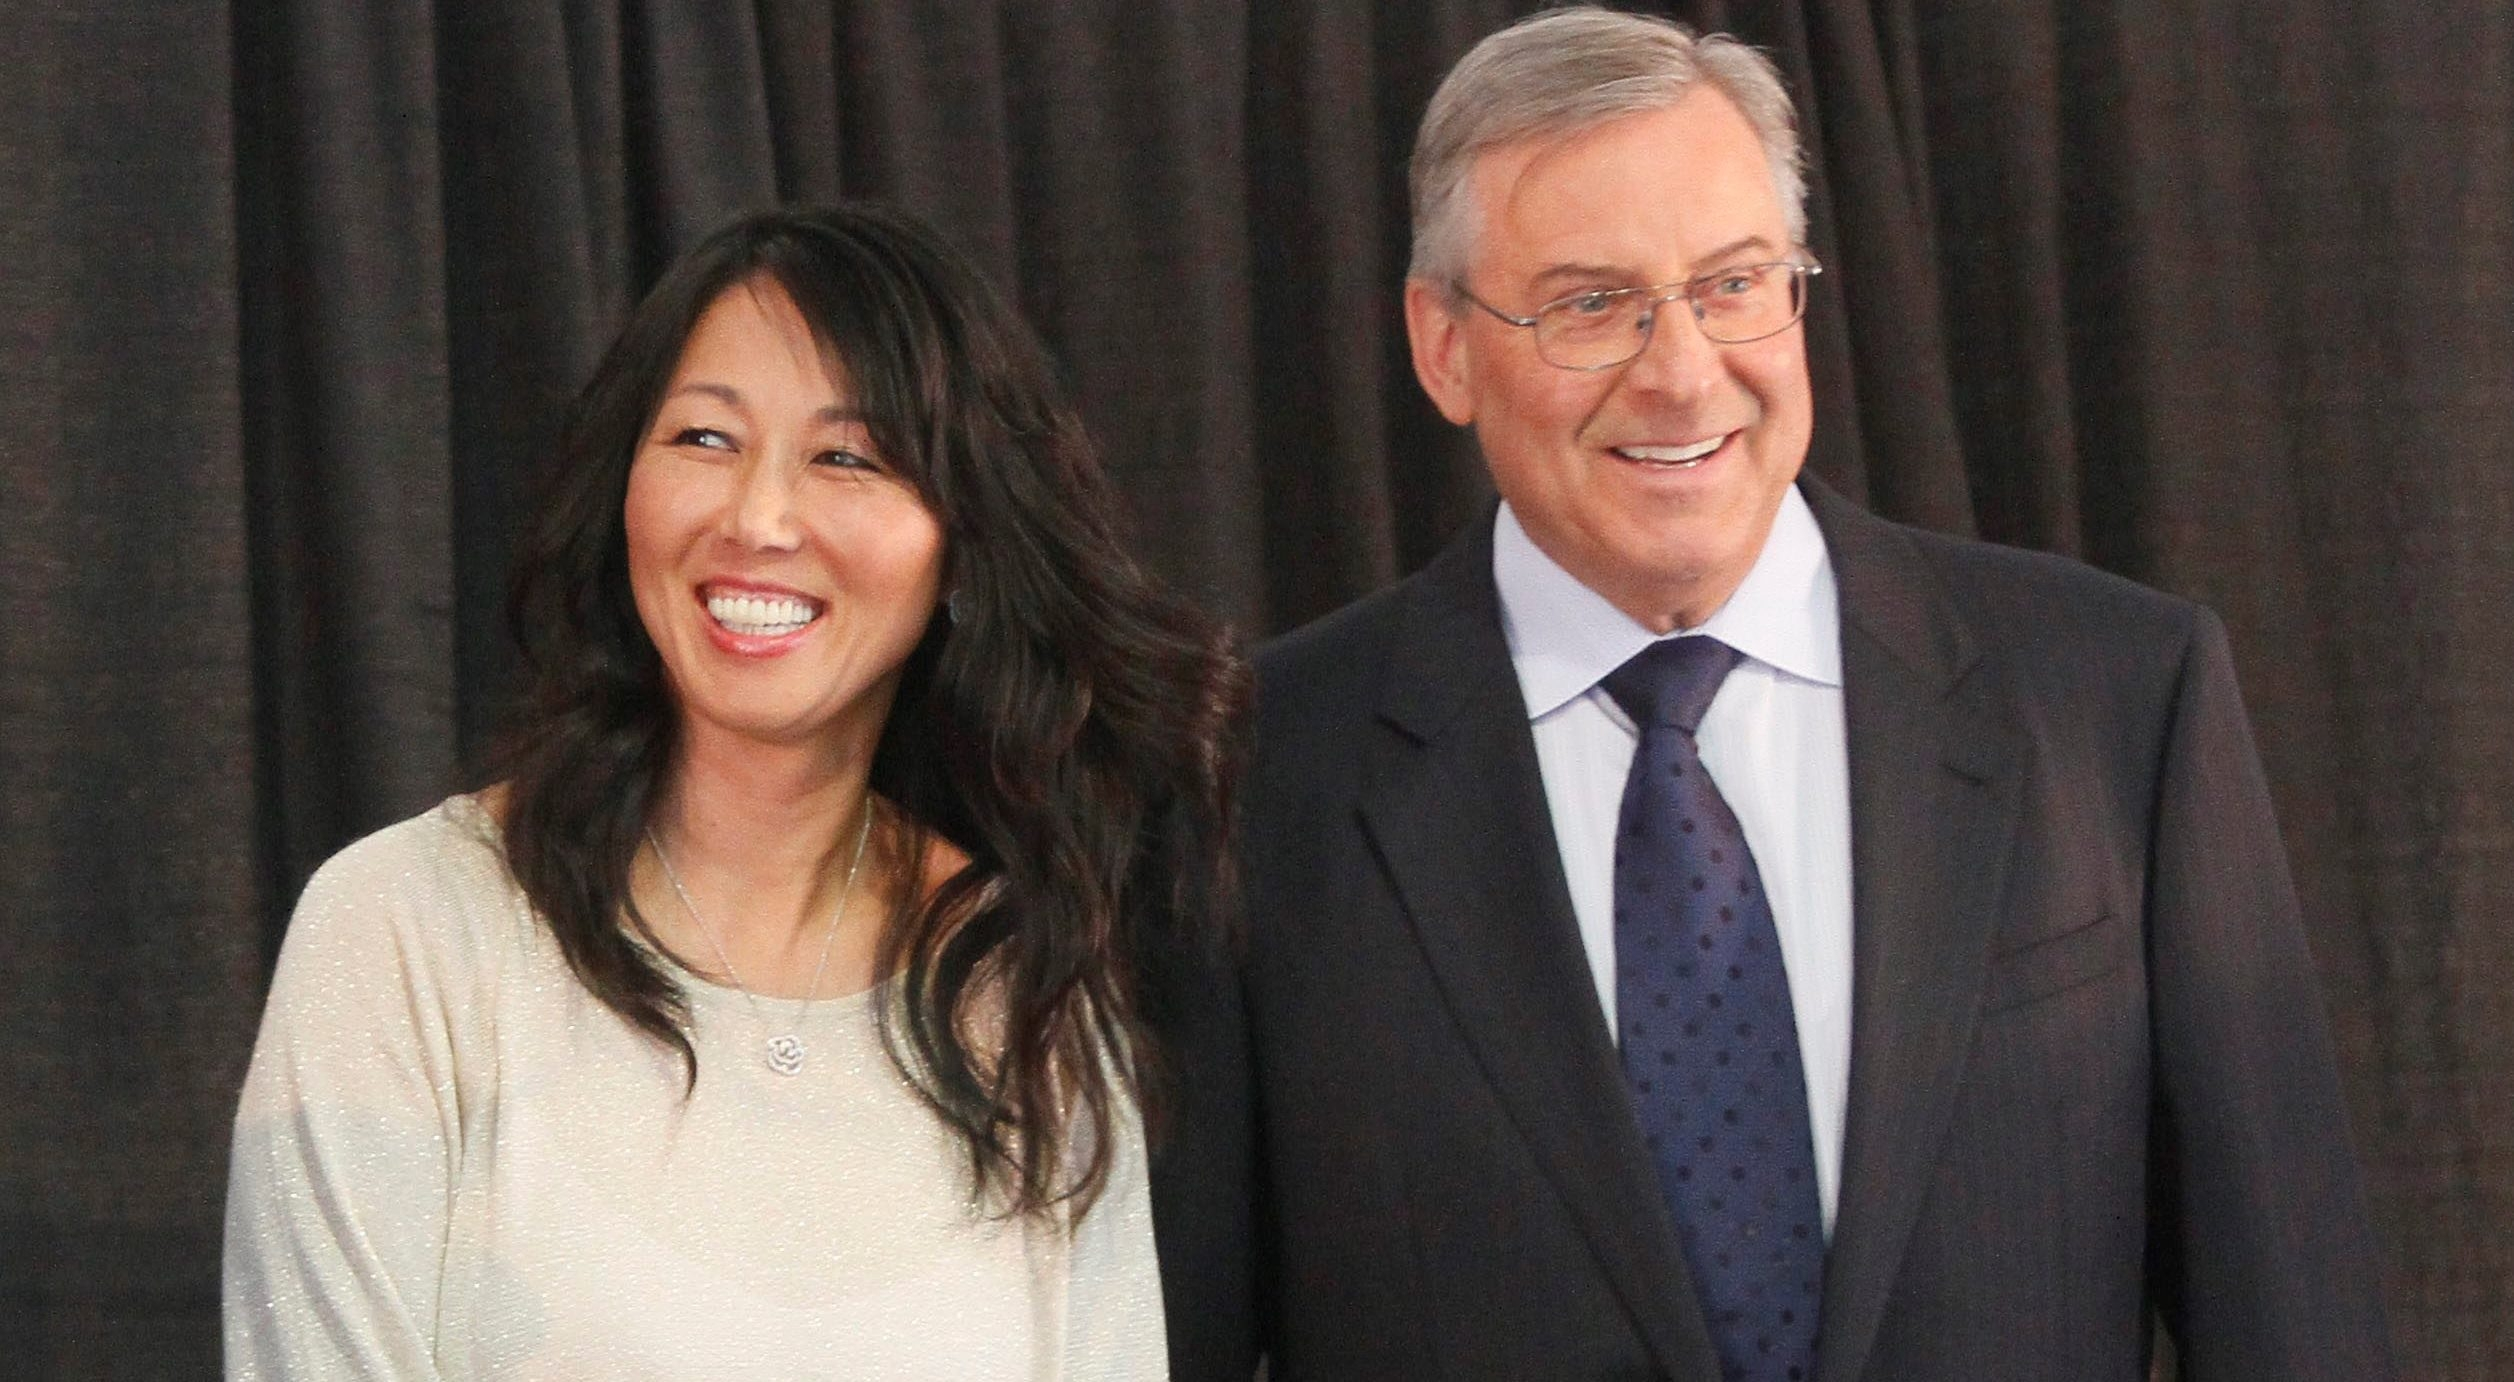 Kim and Terry Pegula own two franchises going nowhere rather than just one, Bucky Gleason says. (Mark Mulville/News file photo)